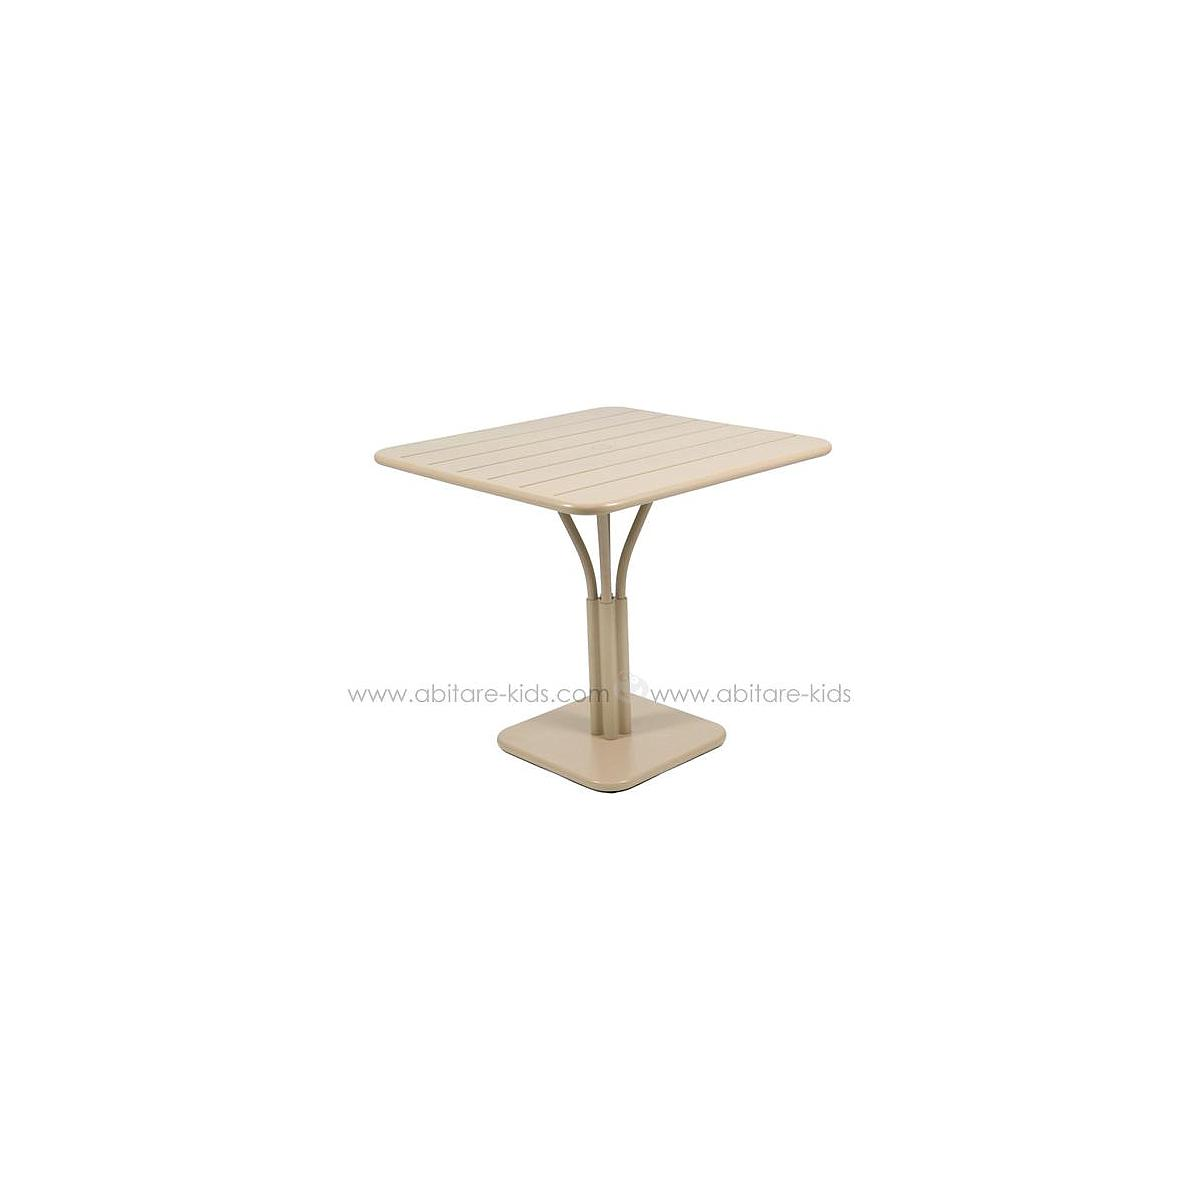 LUXEMBOURG by Fermob Table 80x80 cm muscade